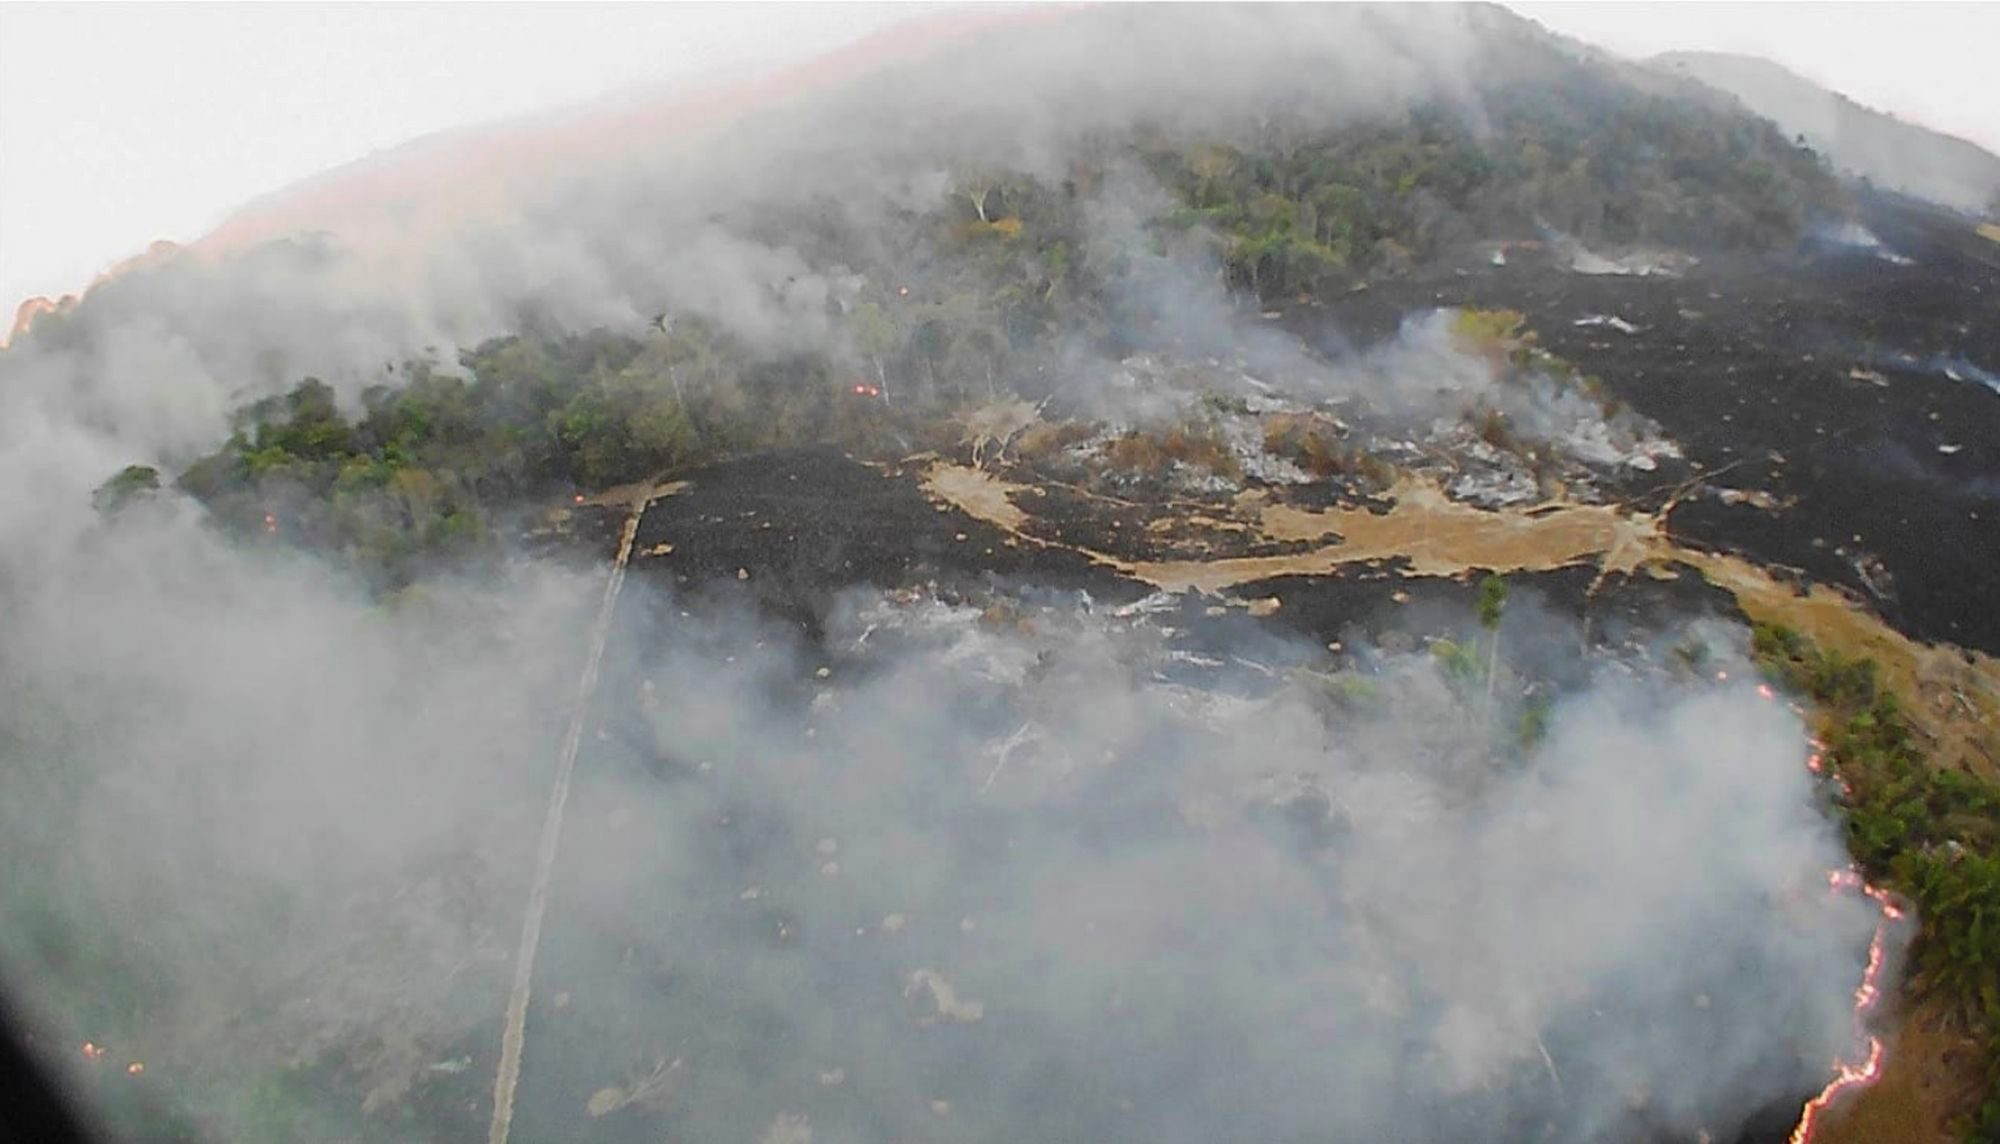 In this drone photo released by the Corpo de Bombeiros de Mato Grosso, brush fires burn in Guaranta do Norte municipality, Mato Grosso state, Brazil. Brazil's National Institute for Space Research, a federal agency monitoring deforestation and wildfires, said the country has seen a record number of wildfires this year Environment, Guaranta do Norte, Brazil - 20 Aug 2019